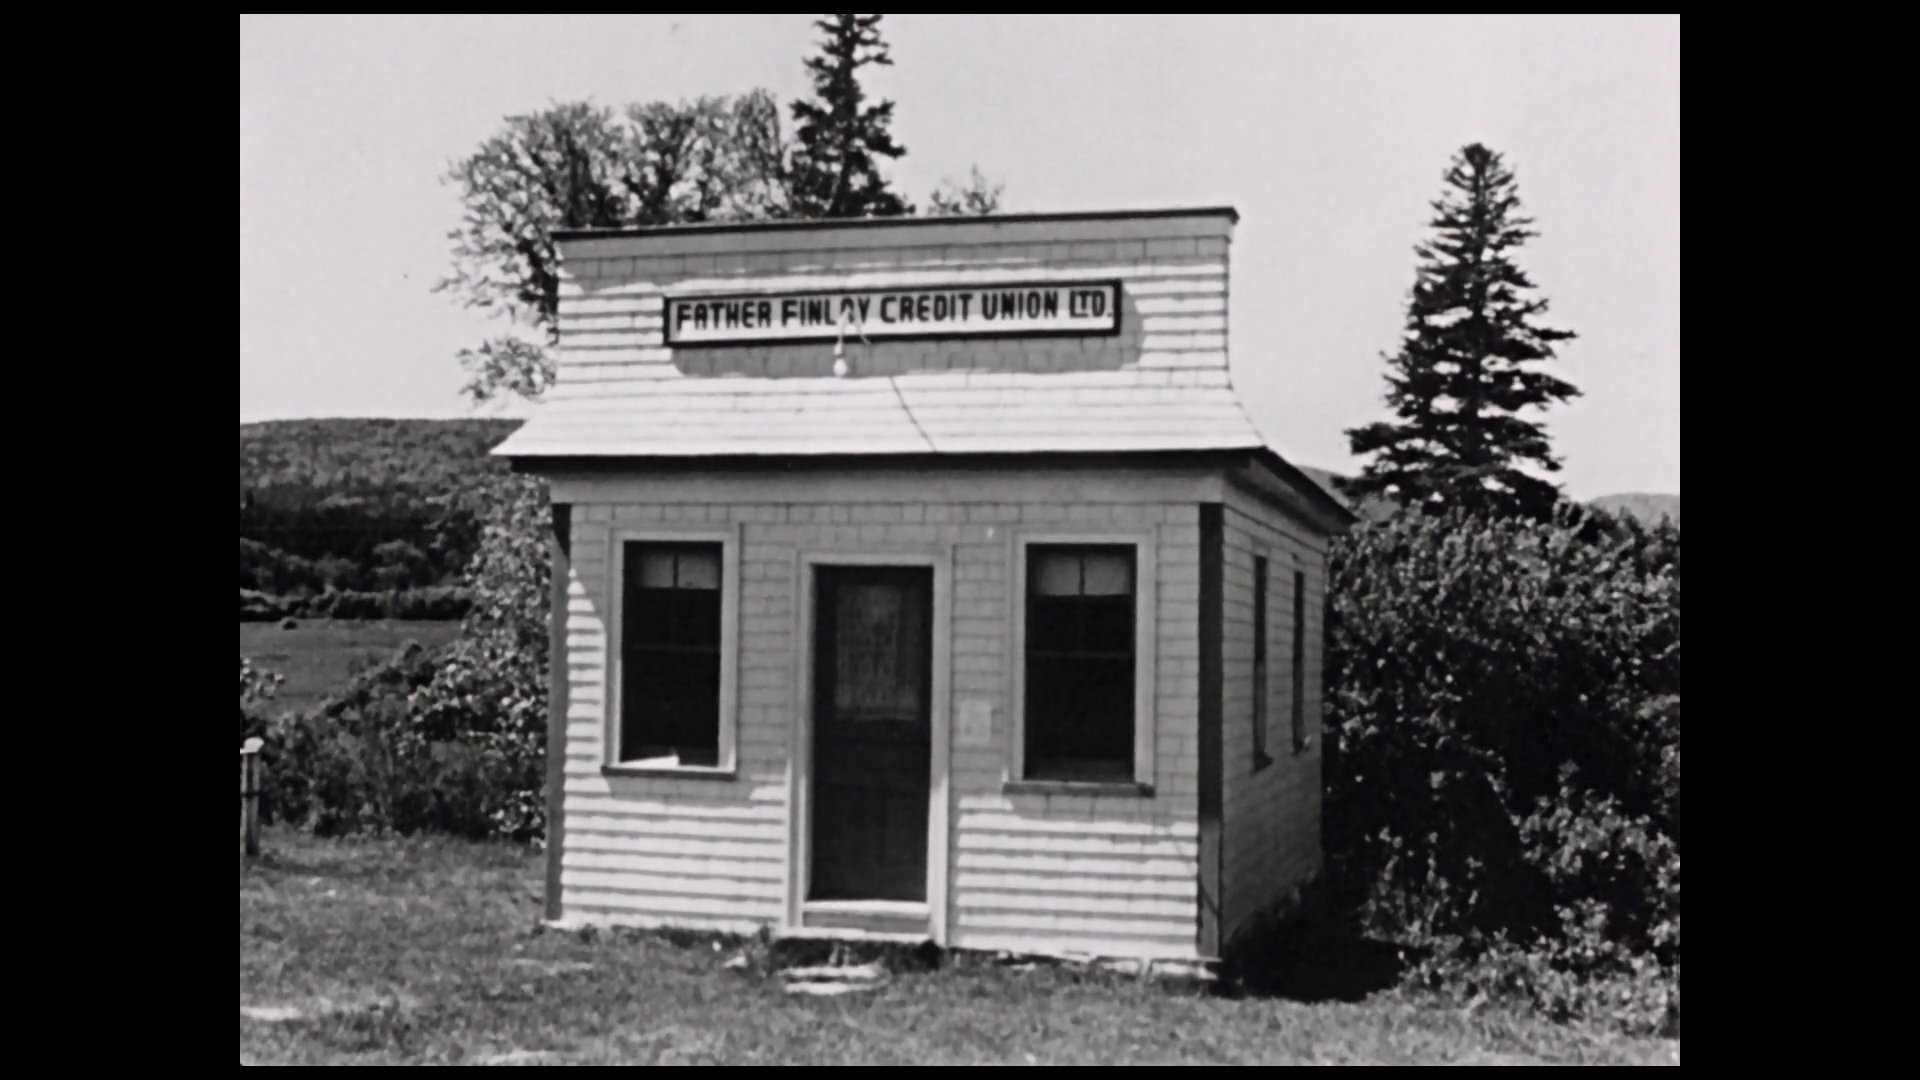 Tiny wooden building with a sign saying Father Finley Credit Union